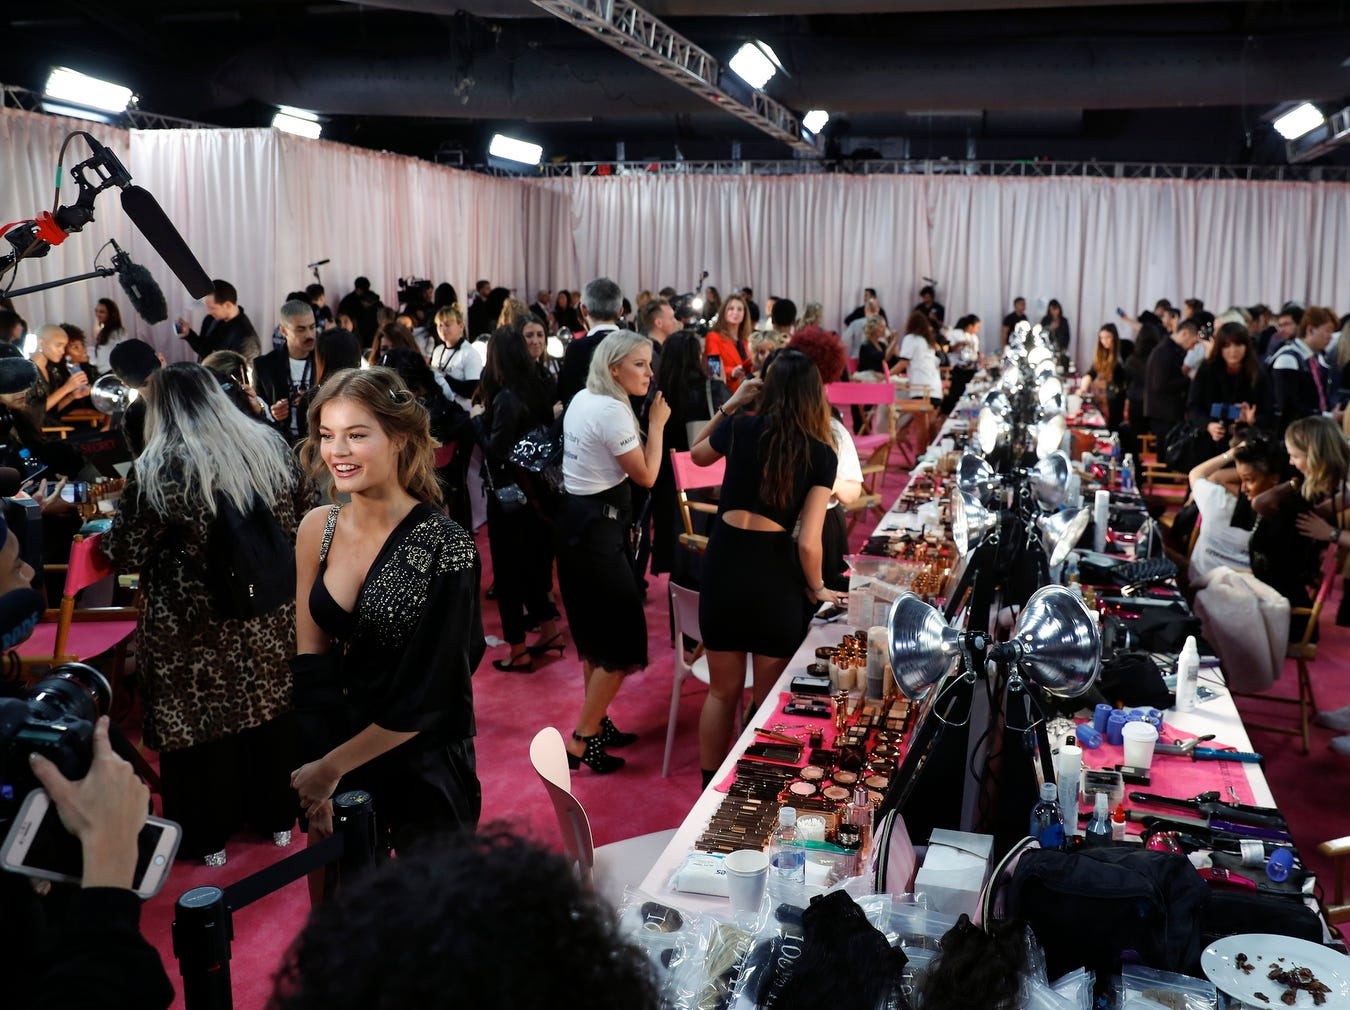 A Victoria's Secret model gives an interview  during hair and make-up sessions before the start of the Victoria's Secret fashion event.